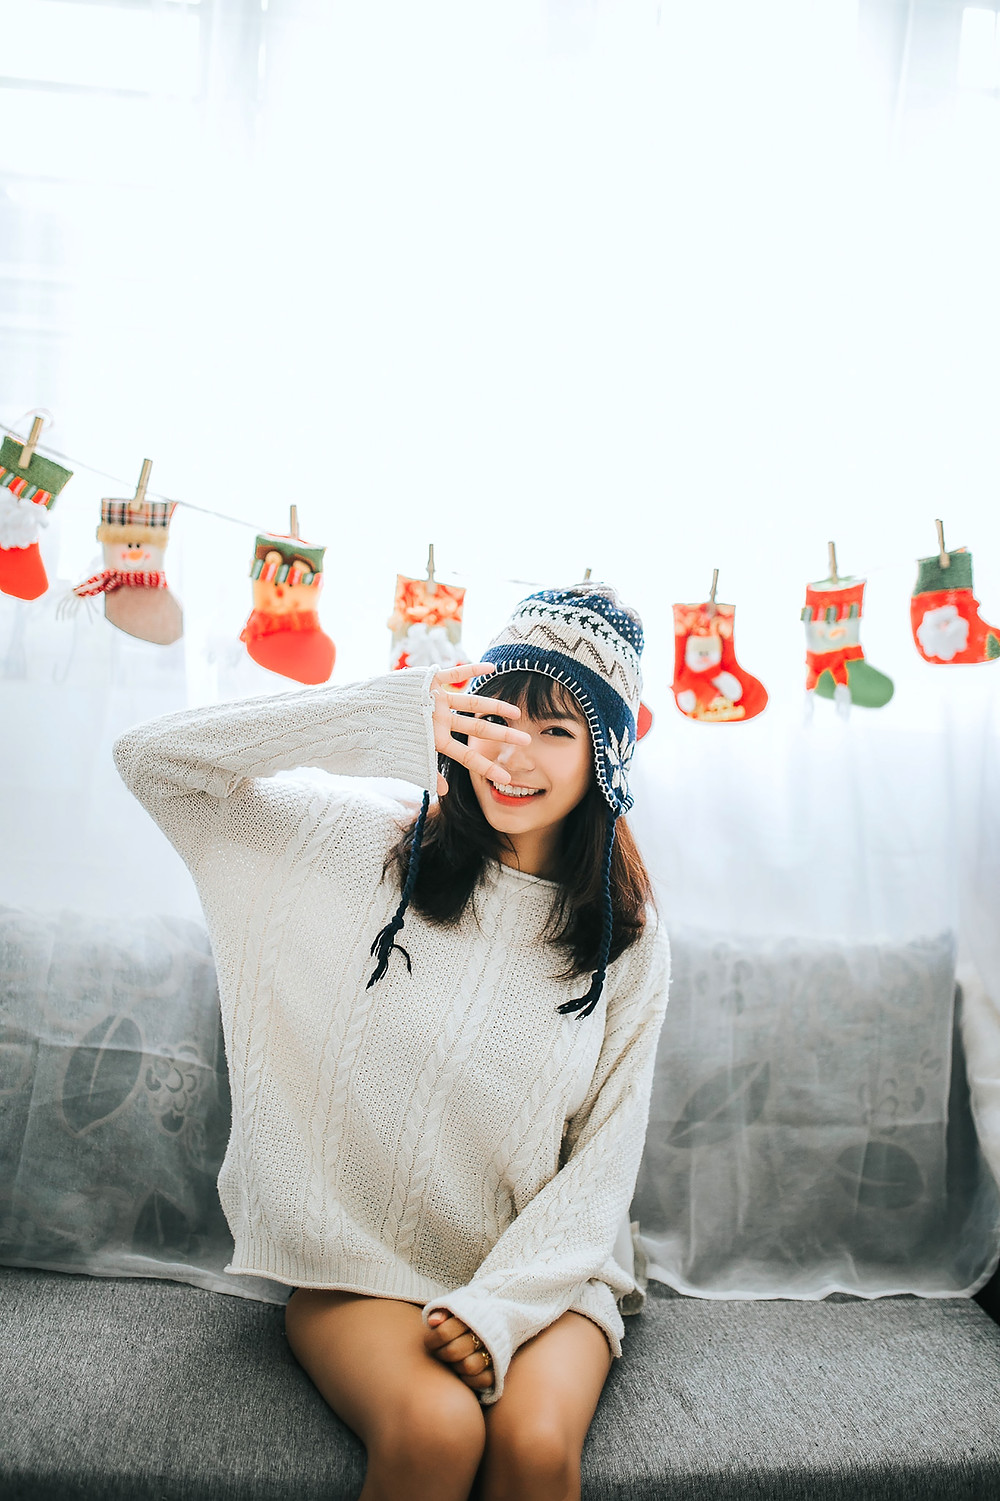 Cute woman sitting wearing a christmas hat and jumper with christmas decorations behind her